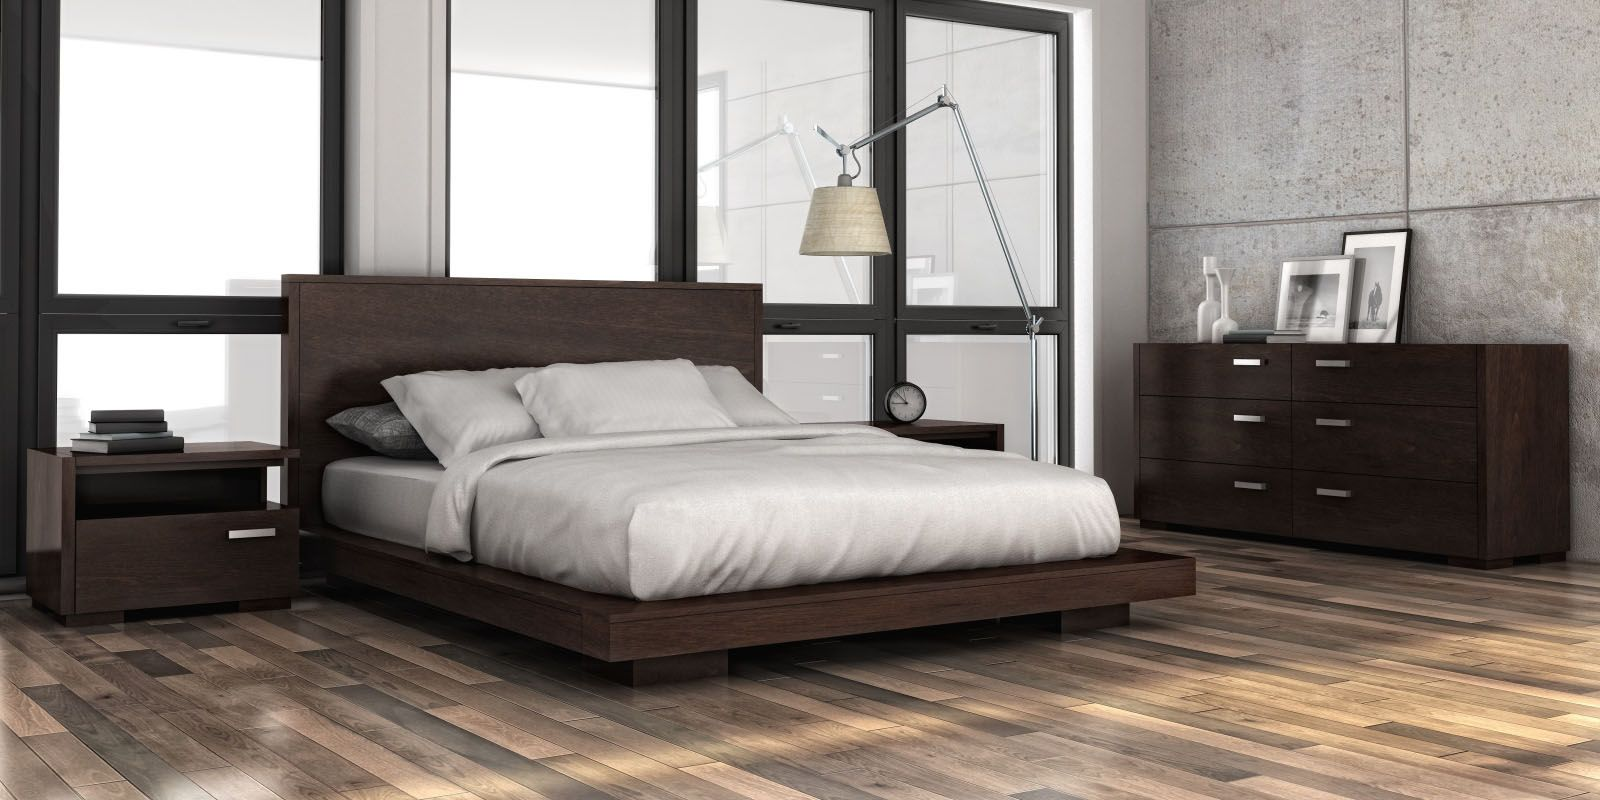 Master bedroom furniture  Collection PARIS huppe  My future home  Pinterest  Bedrooms